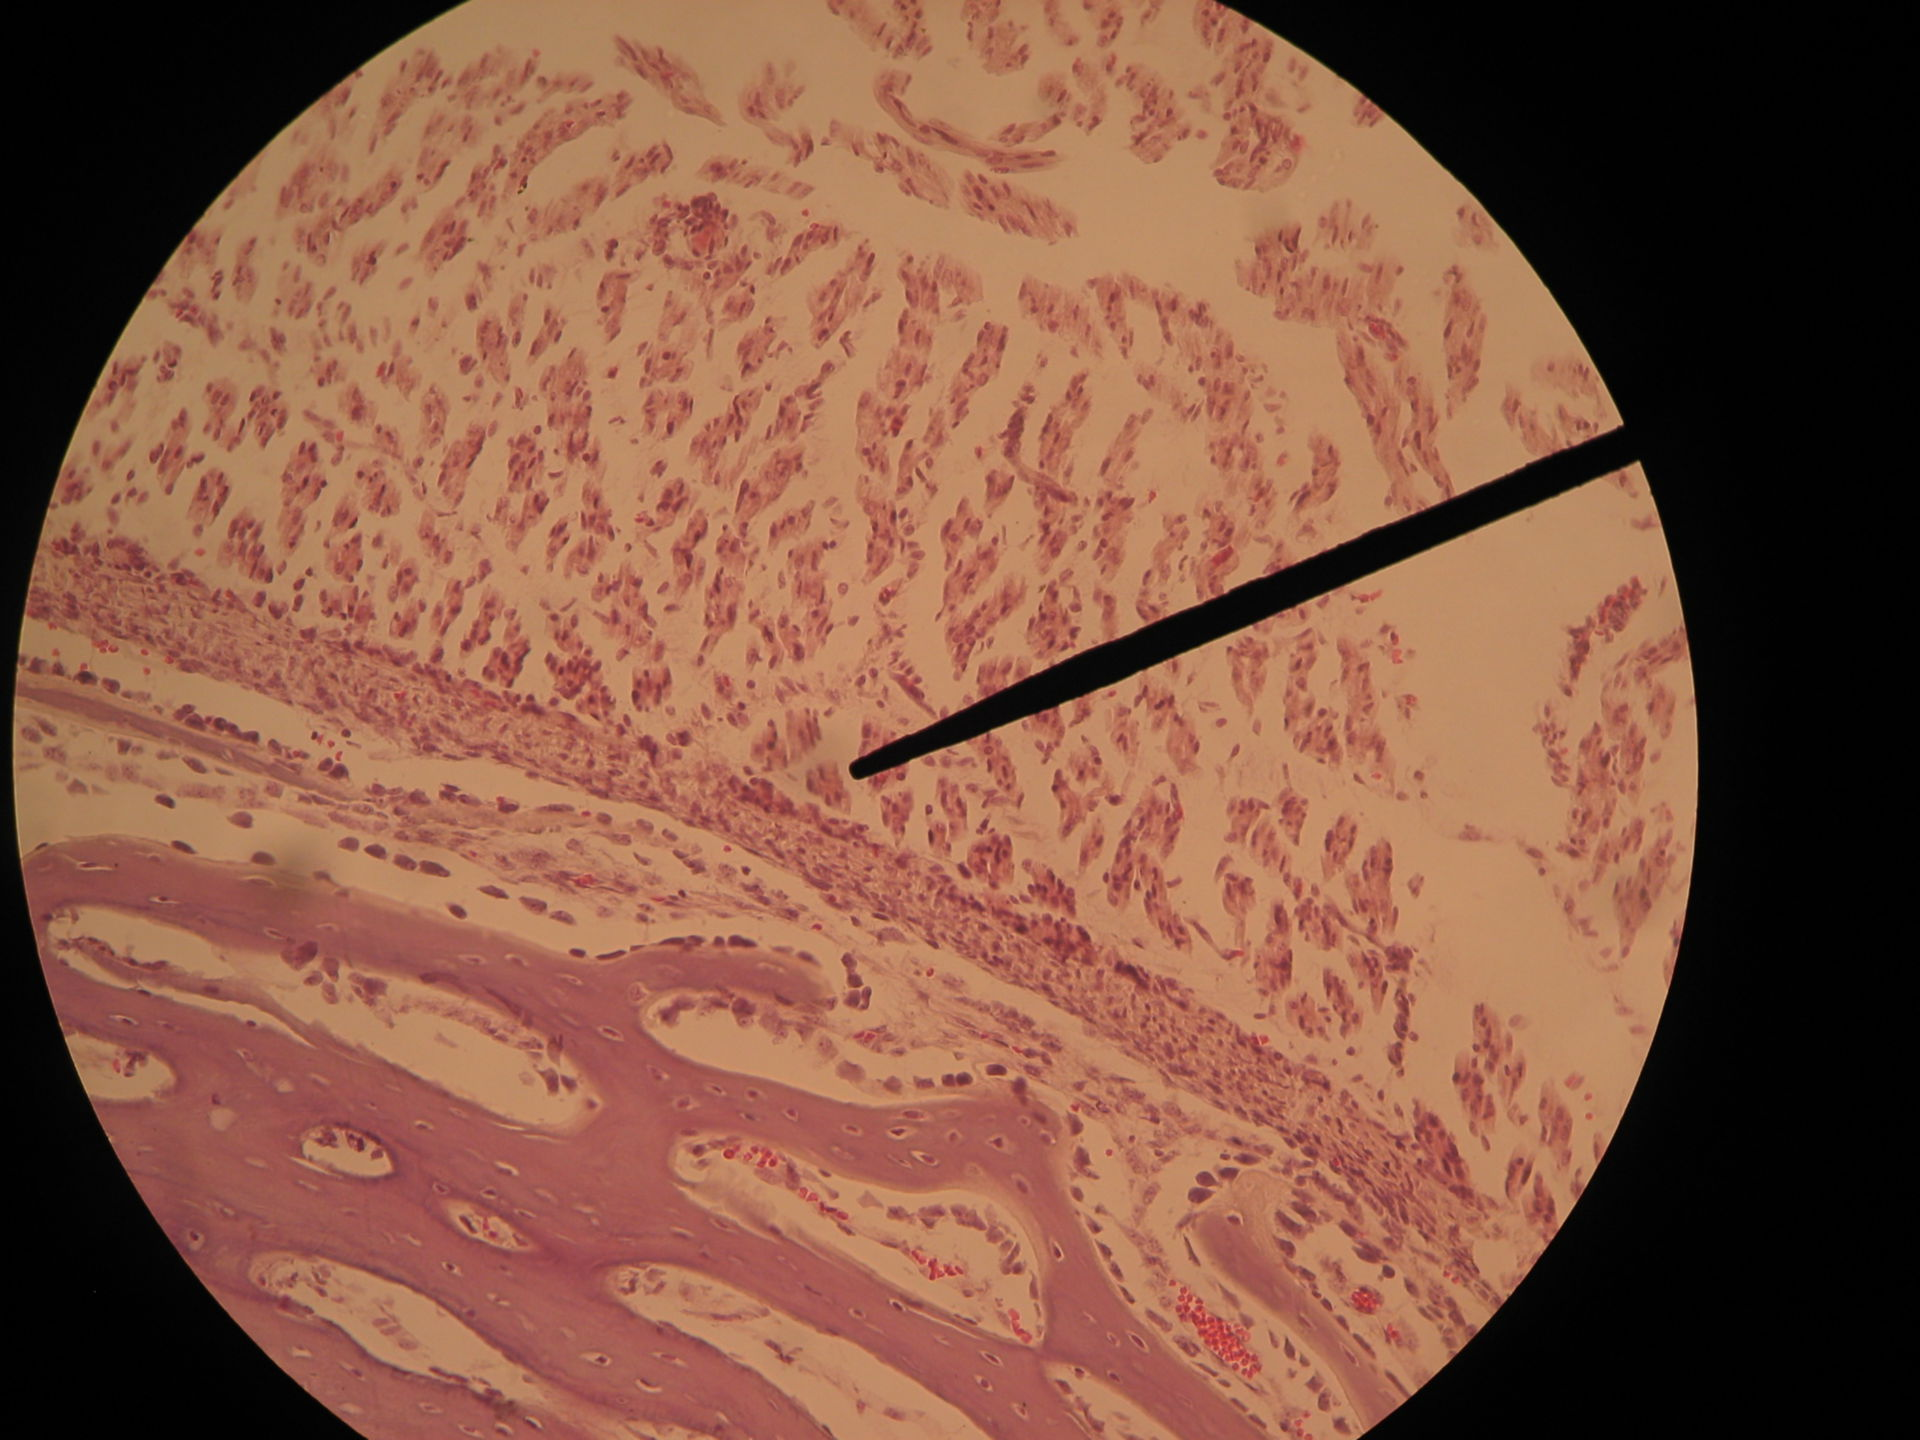 Red bone marrow of a pig fetus-periosteum